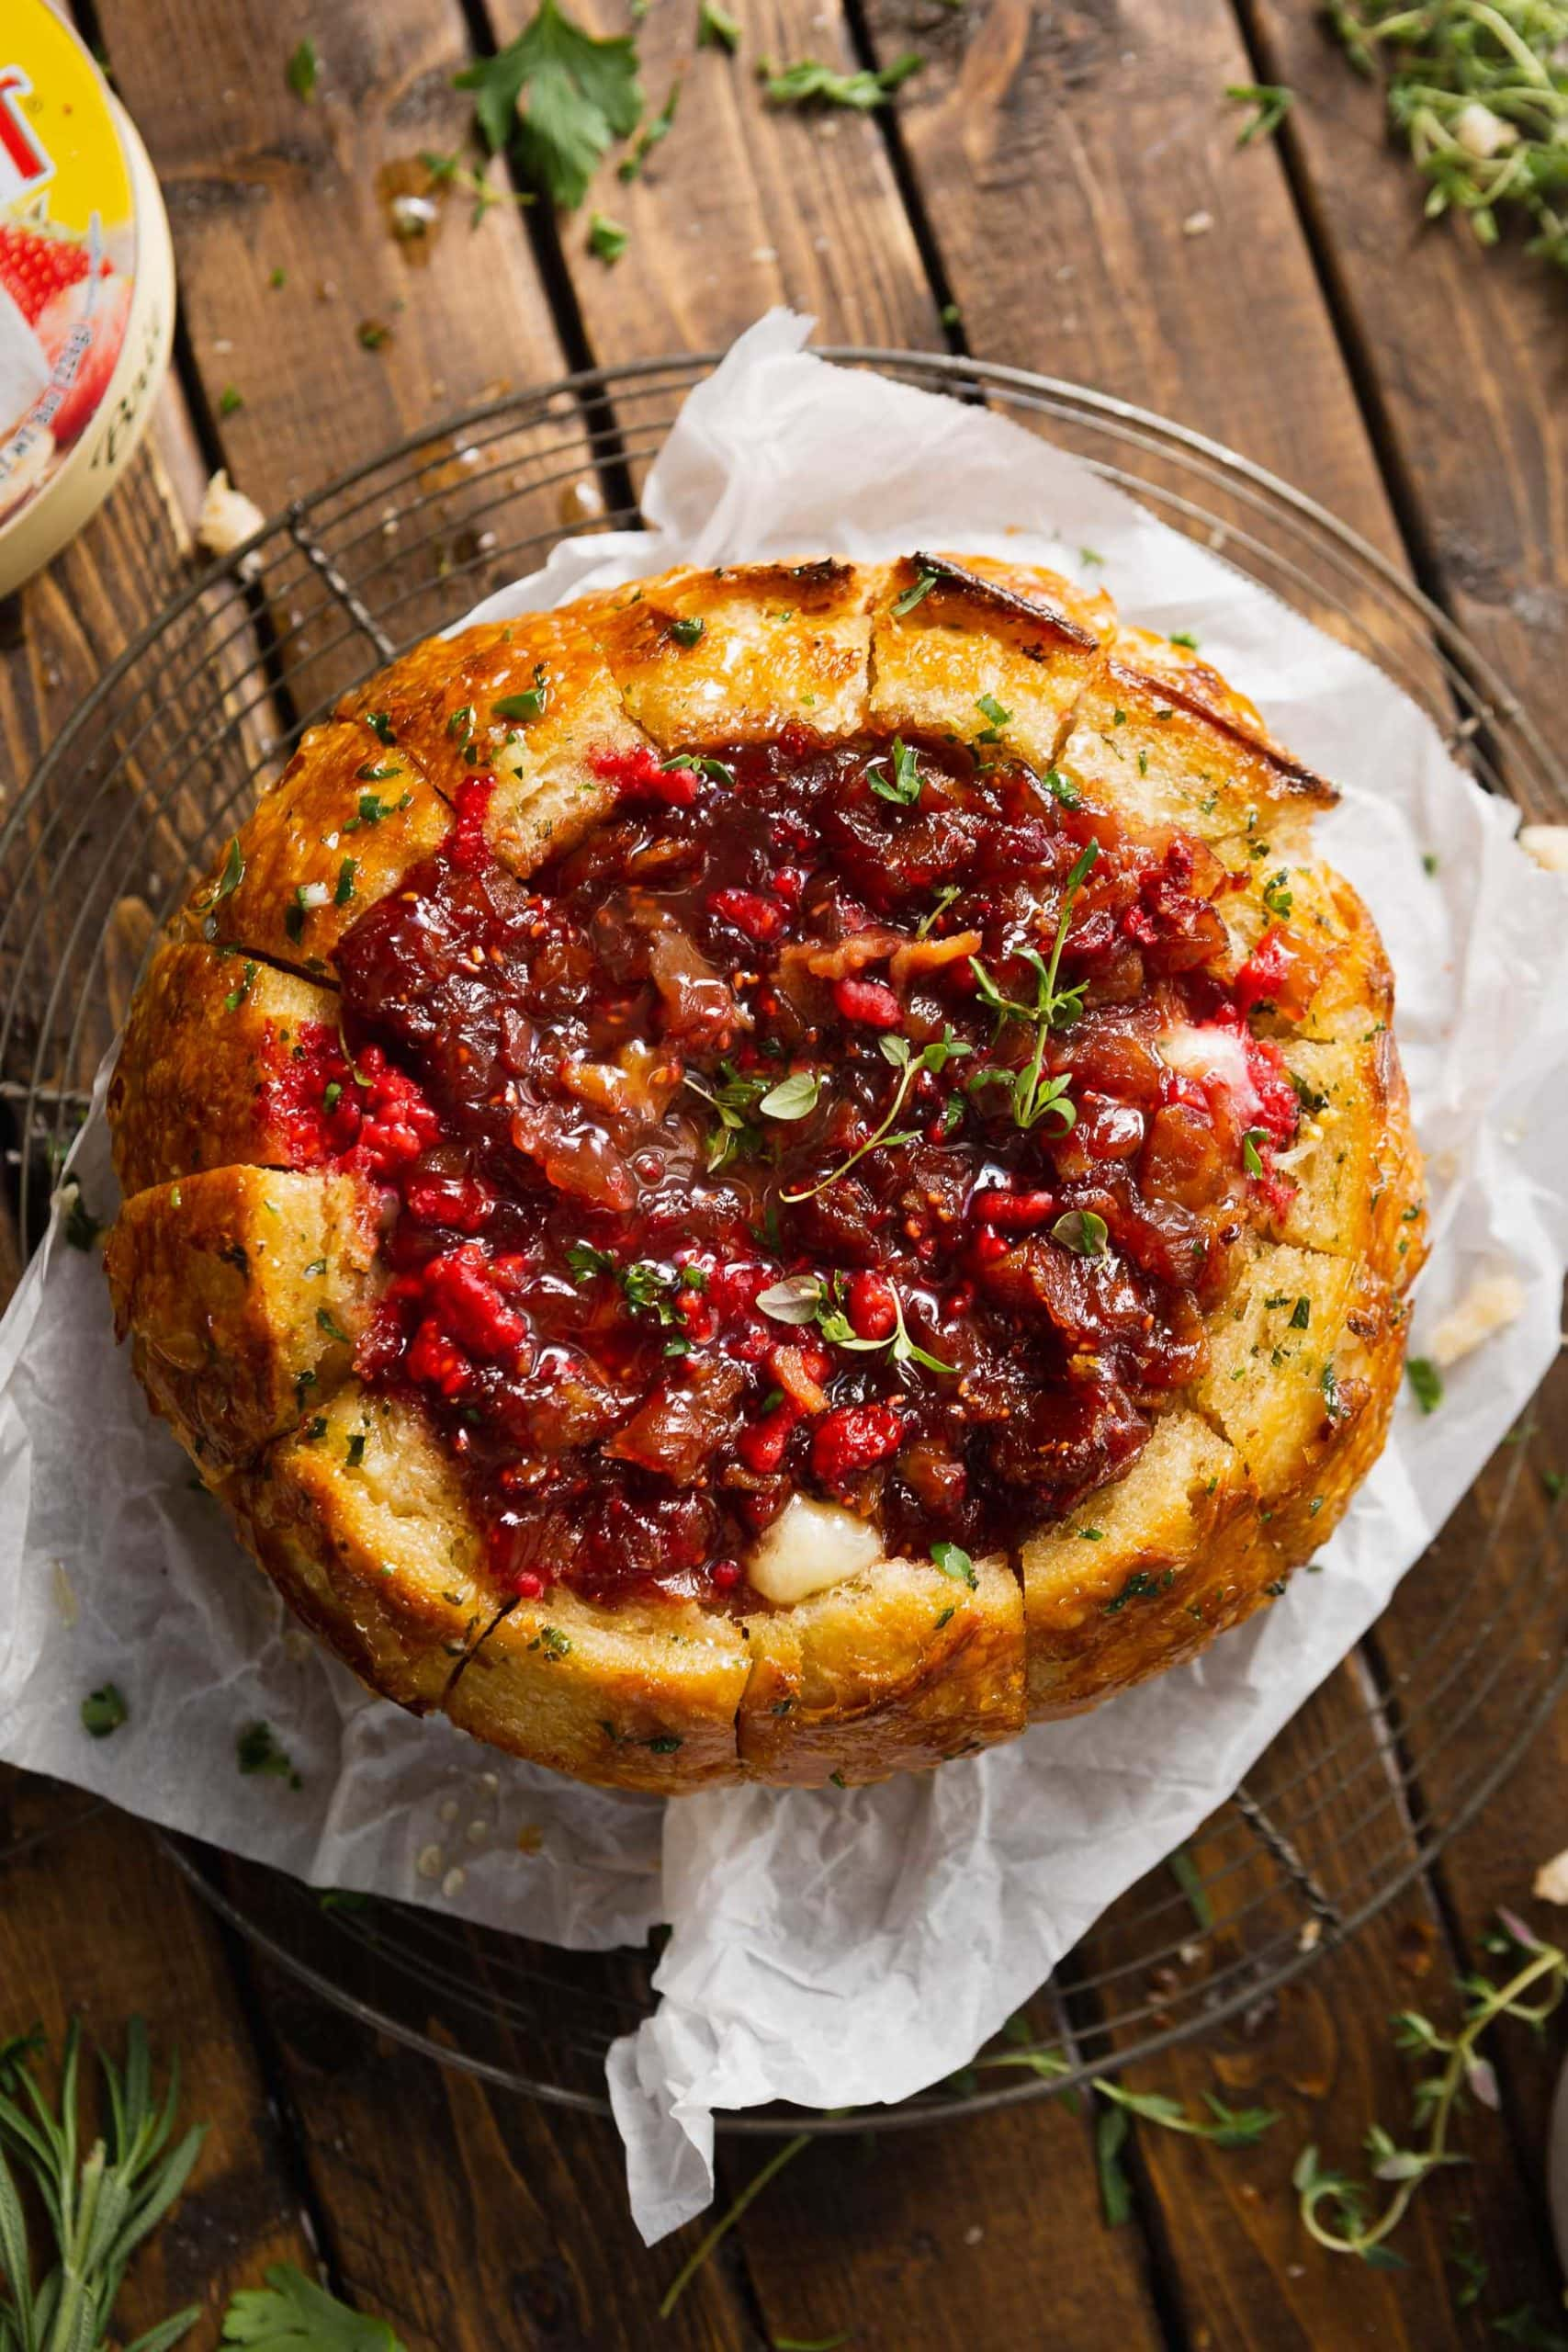 A bread bowl that has the center scooped out and it is filled with brie and topped with a raspberry and onion jam. The bread is resting on a piece of parchment paper.